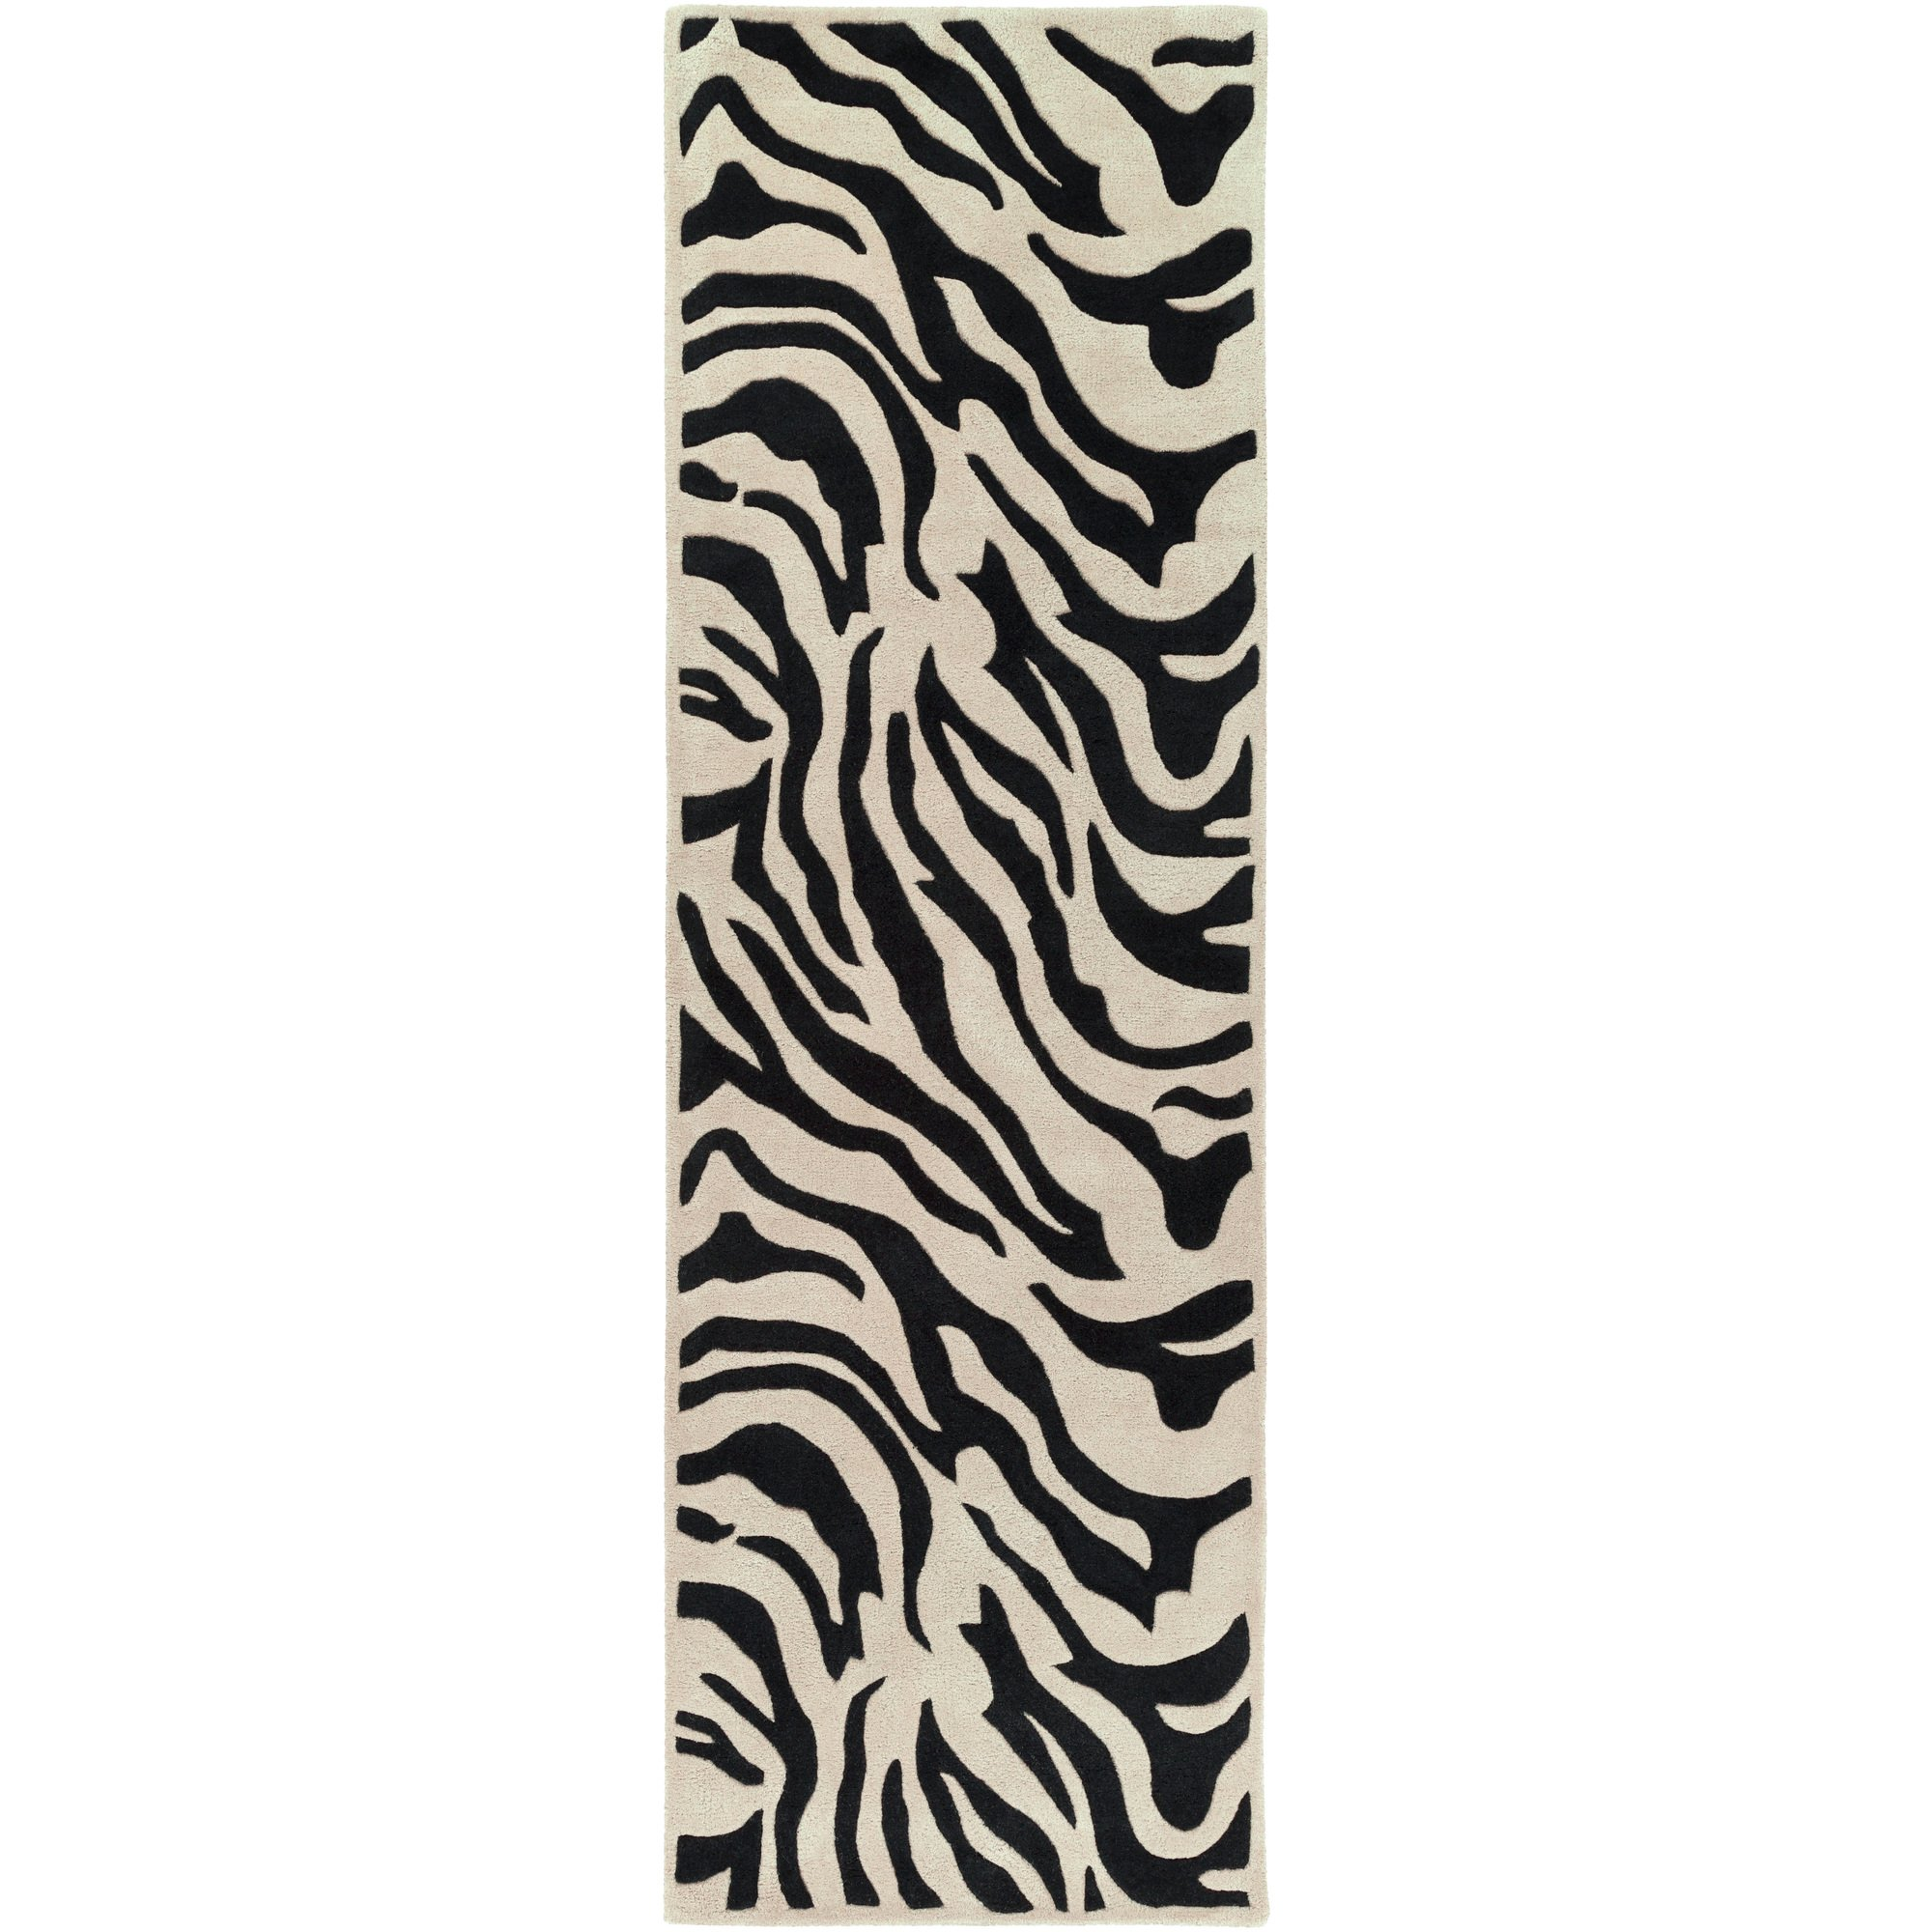 Surya Goa G-59 Contemporary Hand Tufted 100% New Zealand Wool Ivory 2'6'' x 8' Animal Runner